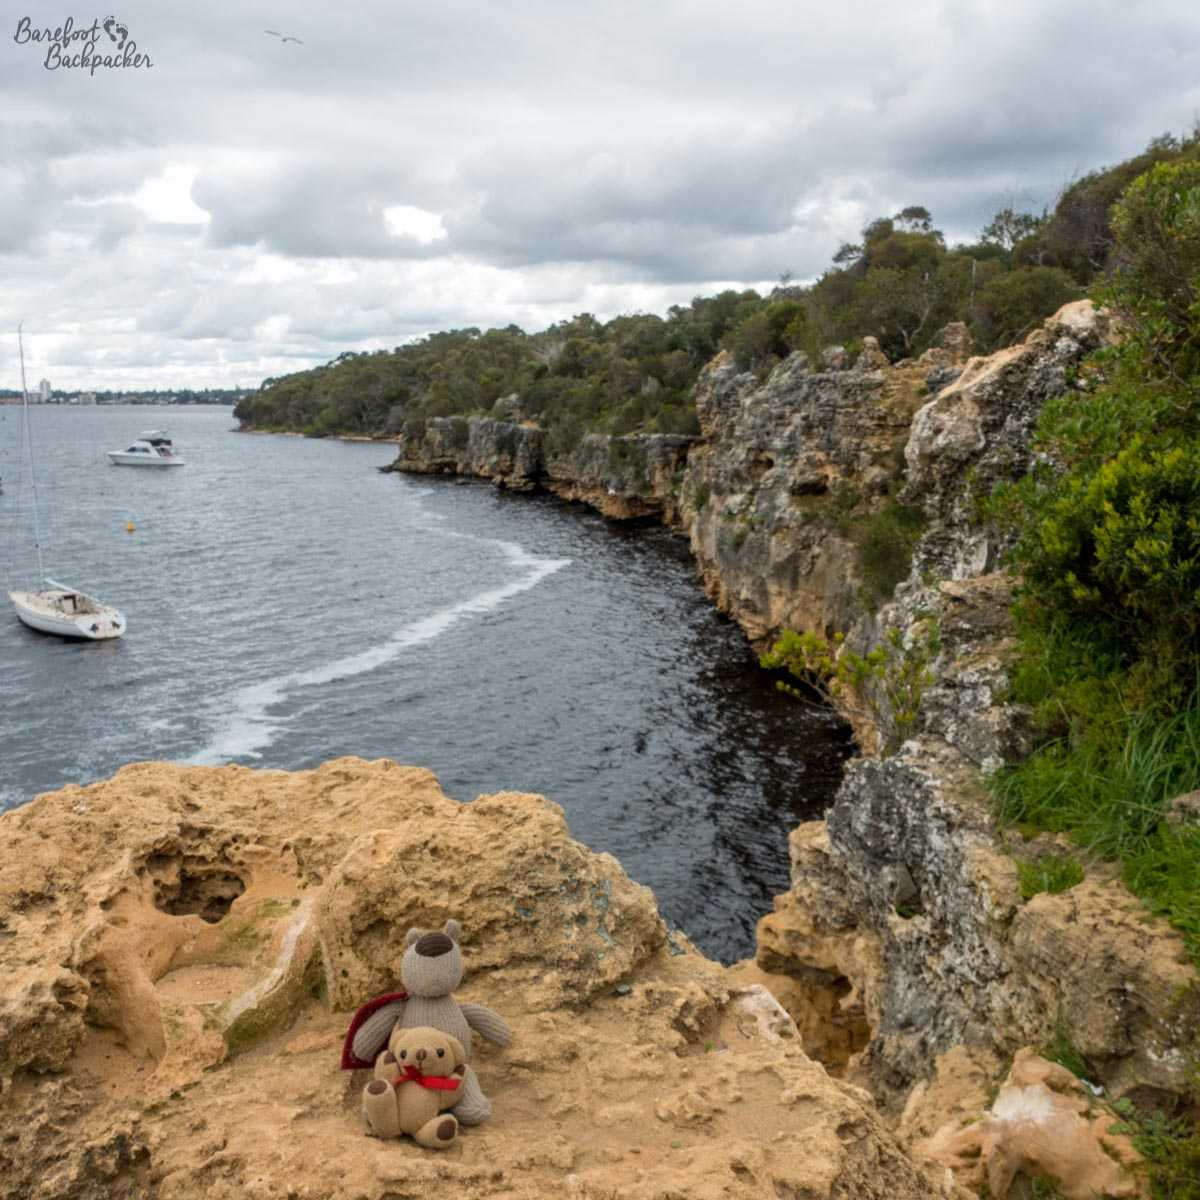 Overlooking the cliffs on the edge of the Swan River, near Melville, Western Australia. In the foreground are my travel companions Baby Ian and Dave. Because who can forget they exist?!